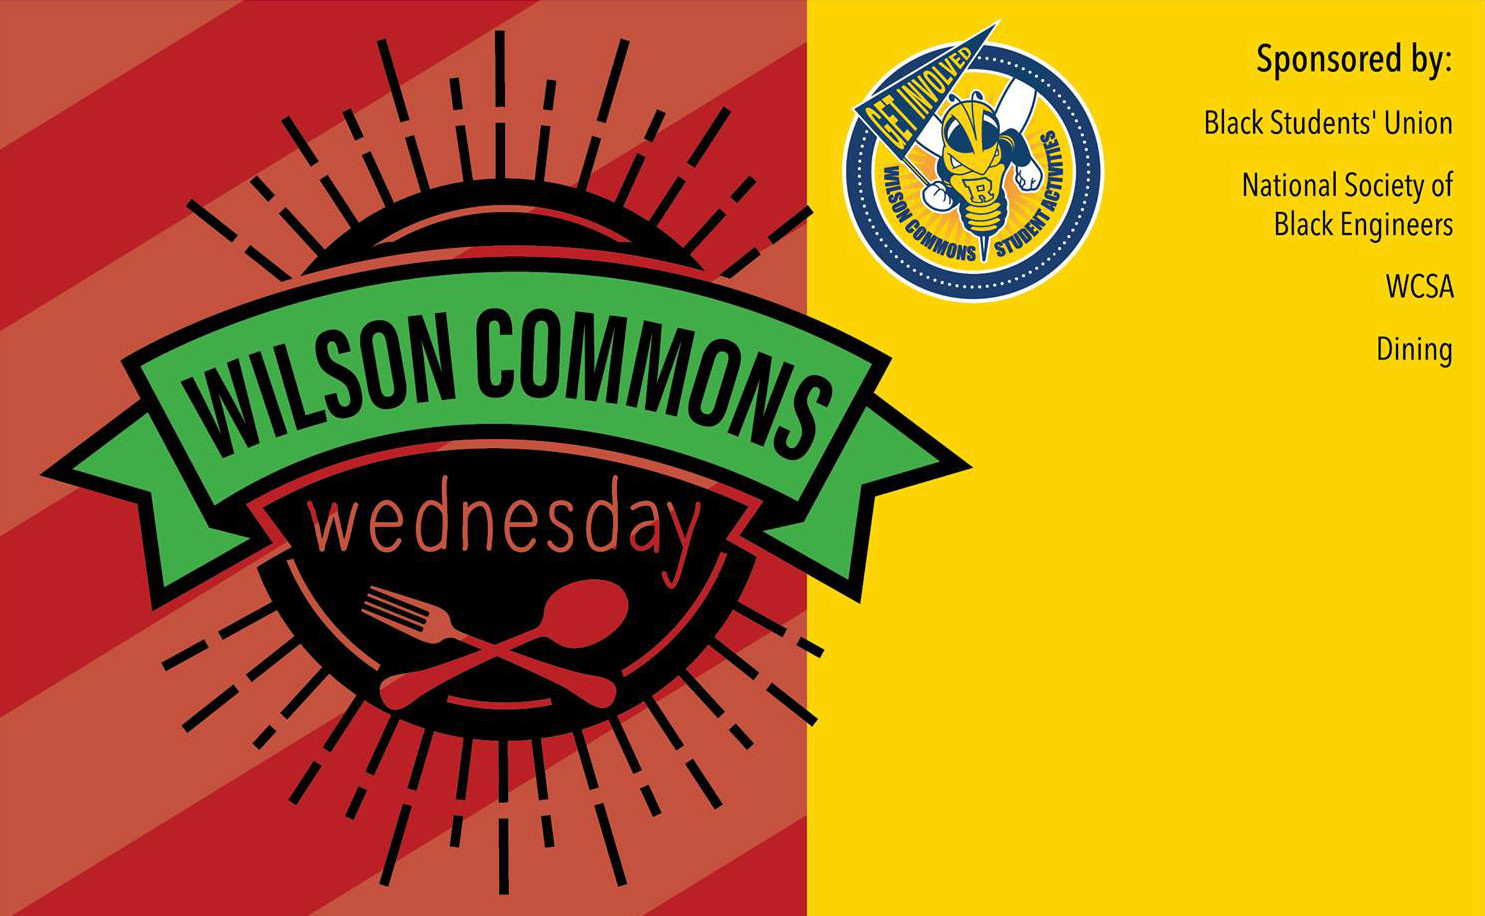 "decorative image with stylized text that reads ""Wilson Commons Wednesday"" in a banner, an emblem of Rocky - a bee mascot holding a flag that reads ""Get Involved"" and text that reads ""Sponsored by Black Students' Union, National Society of Black Engineers, WCSA, Dining."""